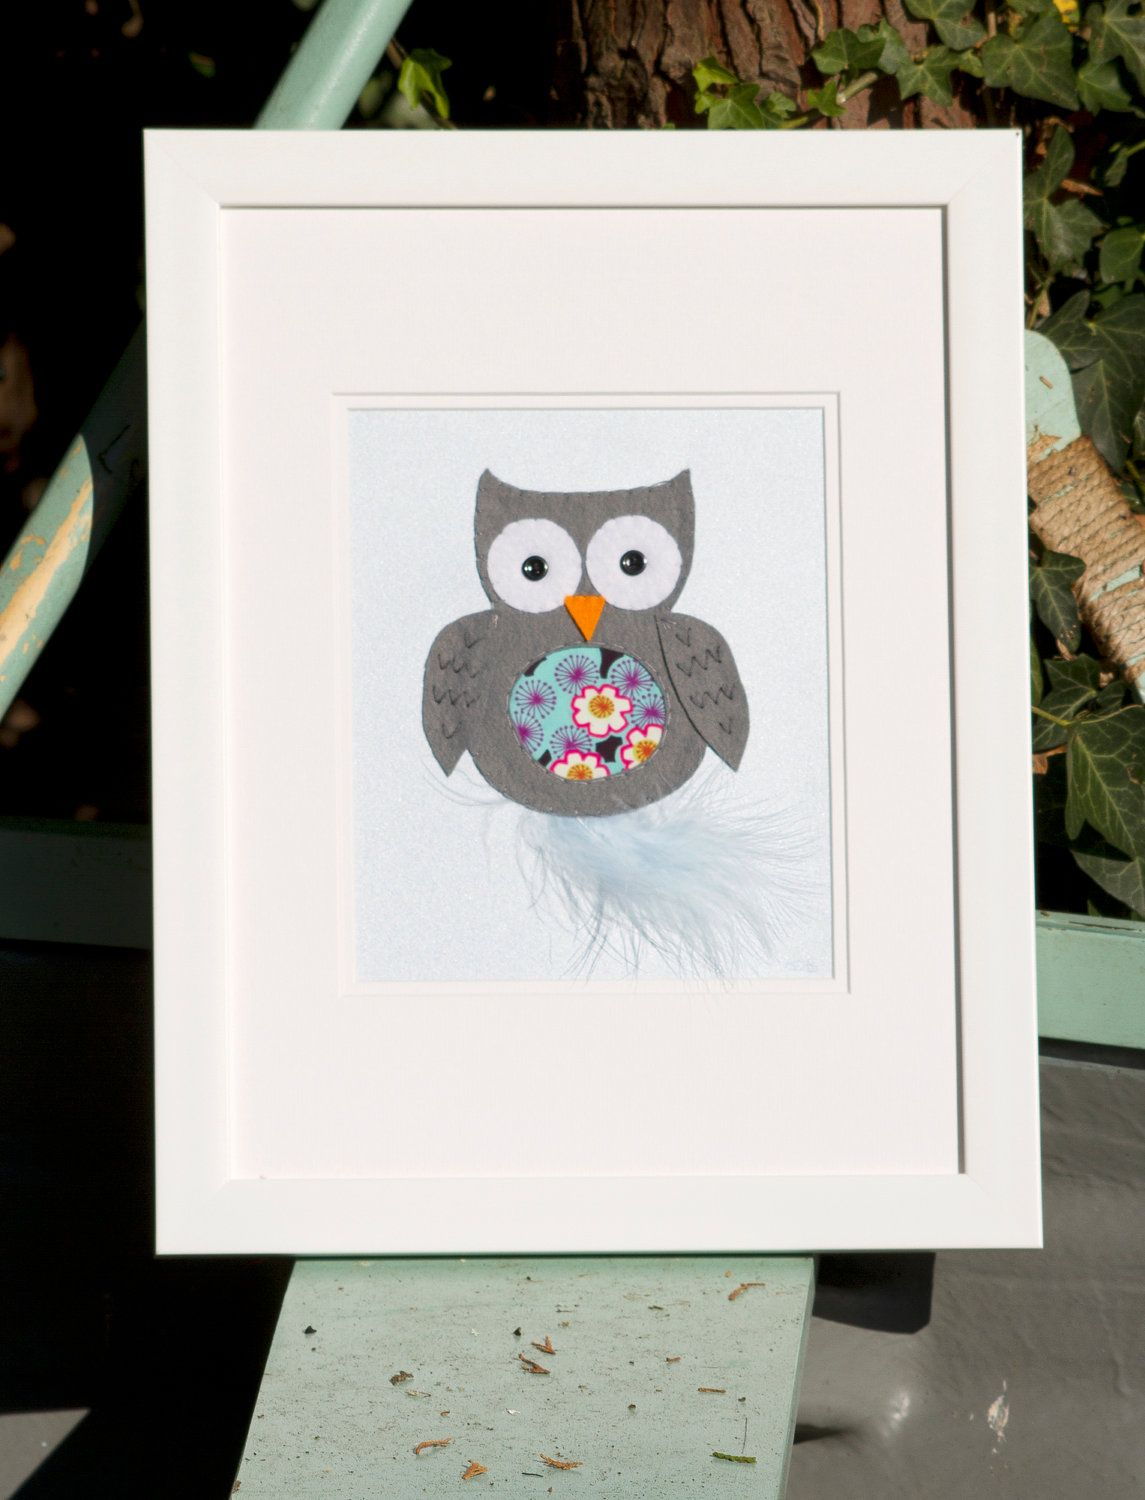 Framed Nursery Owl Art Baby Felt Picture Wall Decor Childrens Pictures Woodland By Thenurseryboutiqueuk On